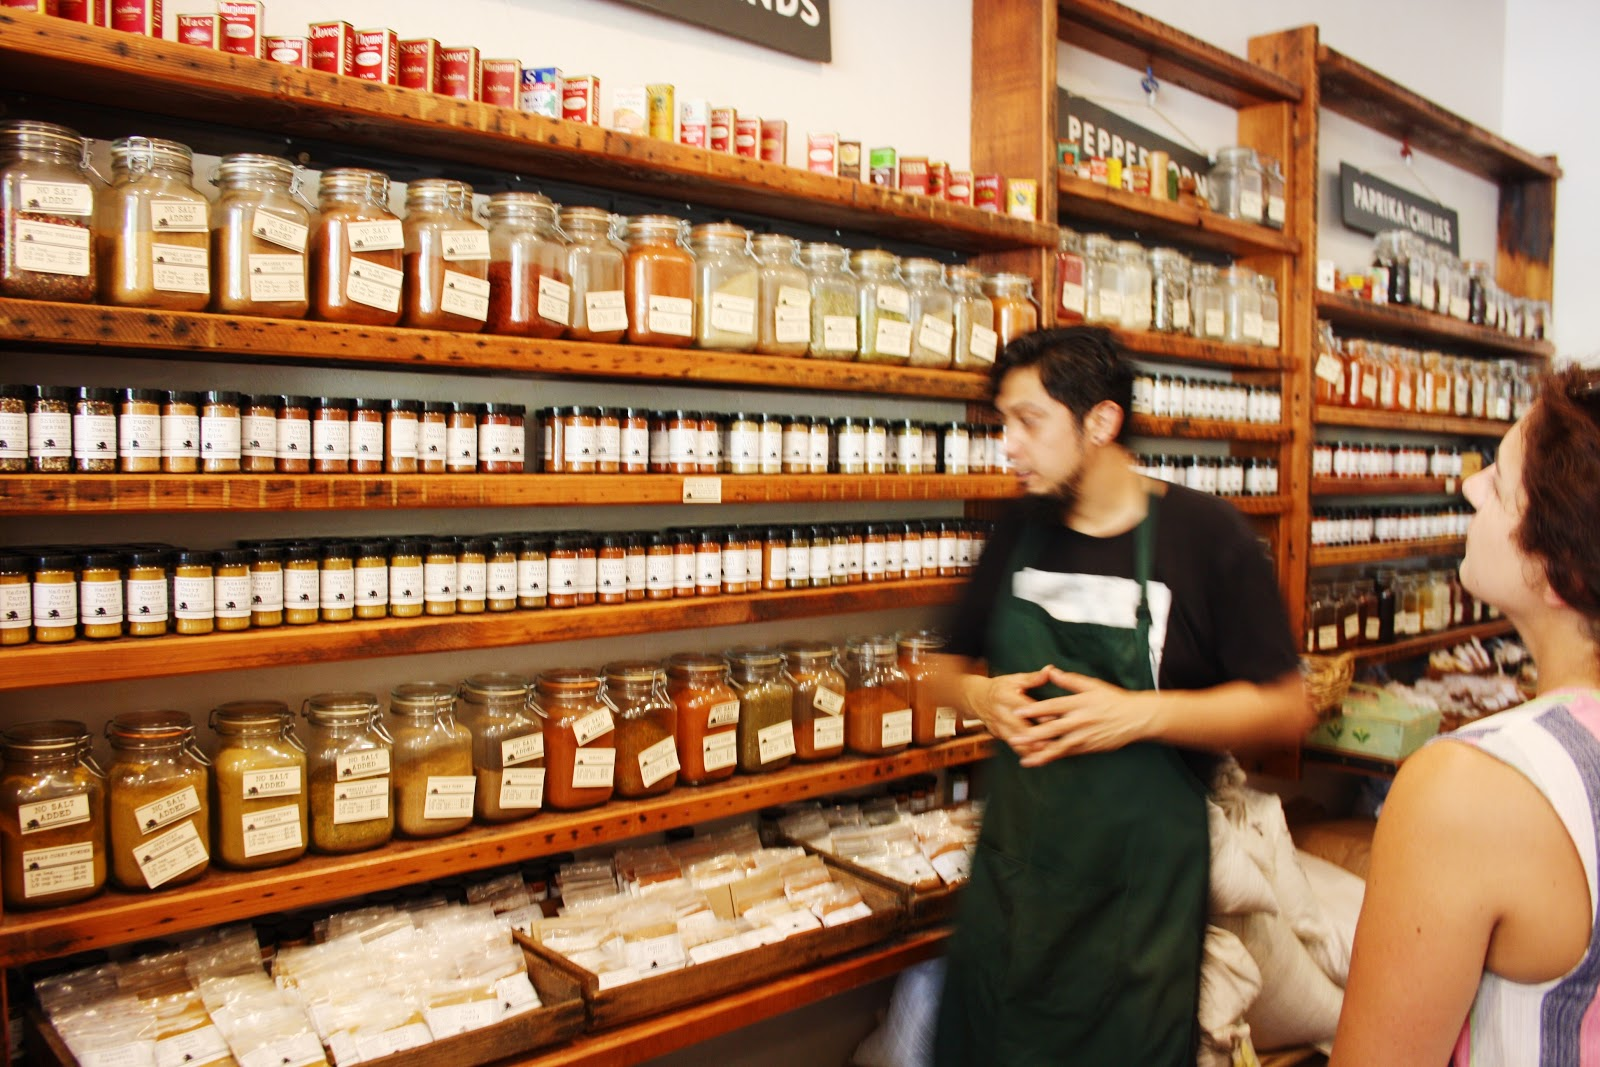 grand lake oaktown spice shop.JPG